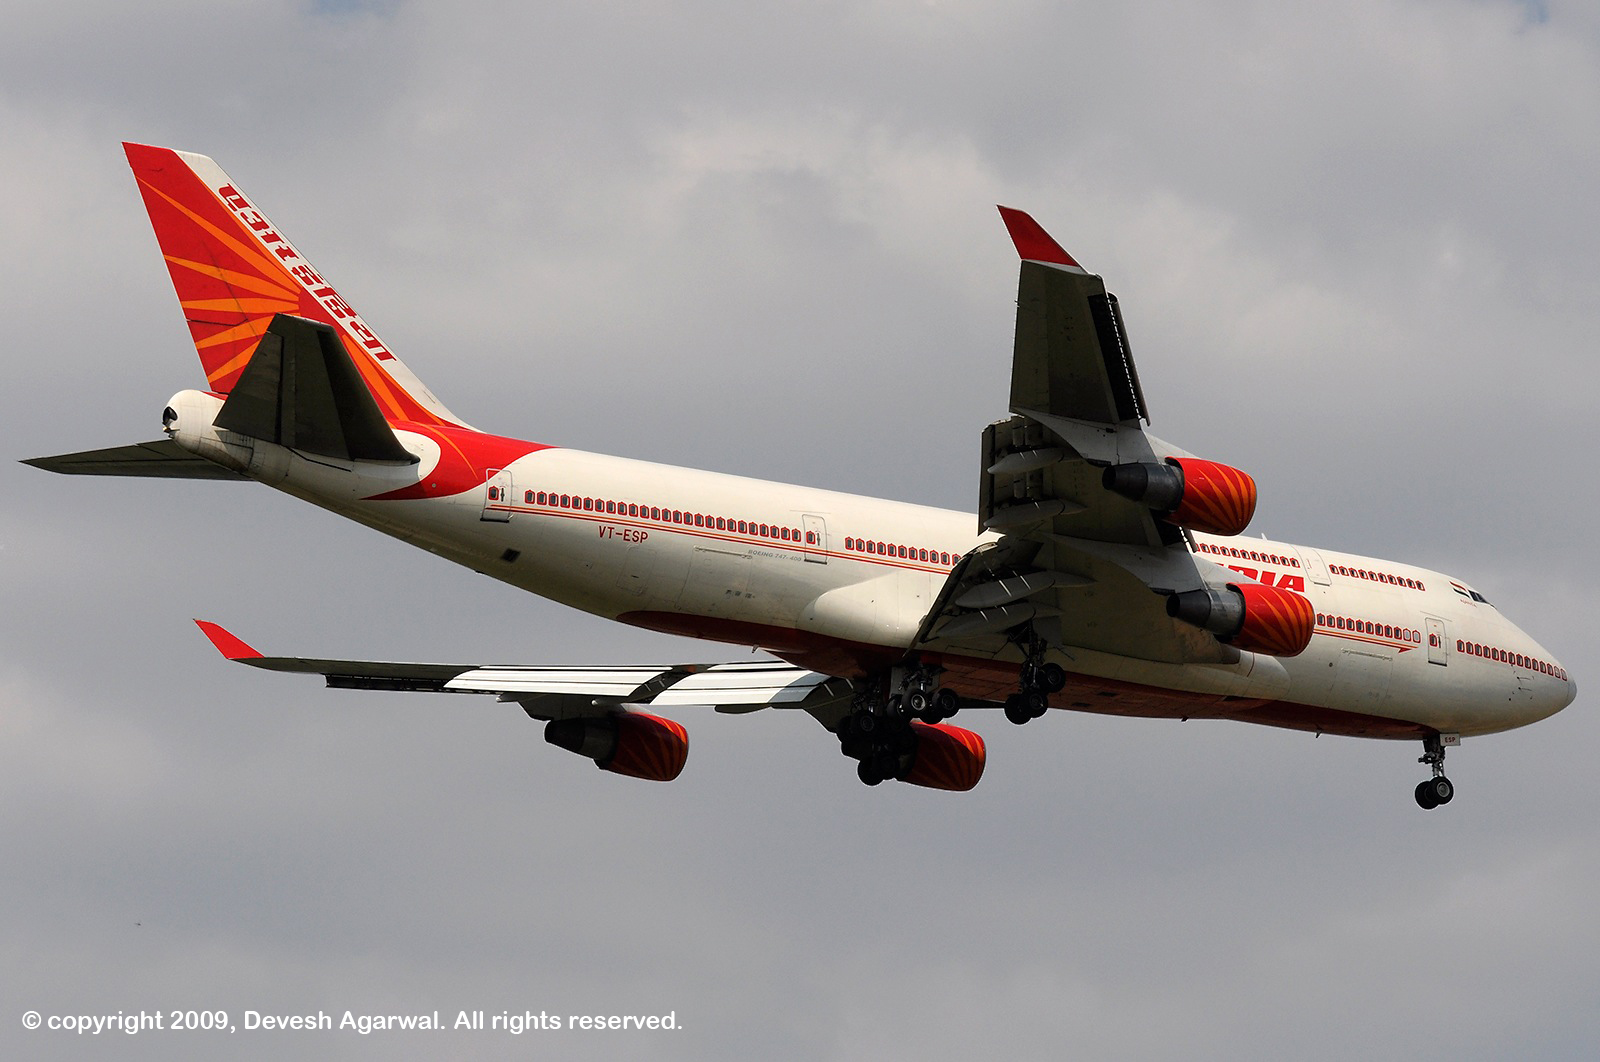 air india's role and its fast India's economic freedom score is 545, making its economy the 130th freest in the 2018 index its overall score has increased by 19 points, led by improvements in judicial effectiveness, business freedom, government integrity, and fiscal health.